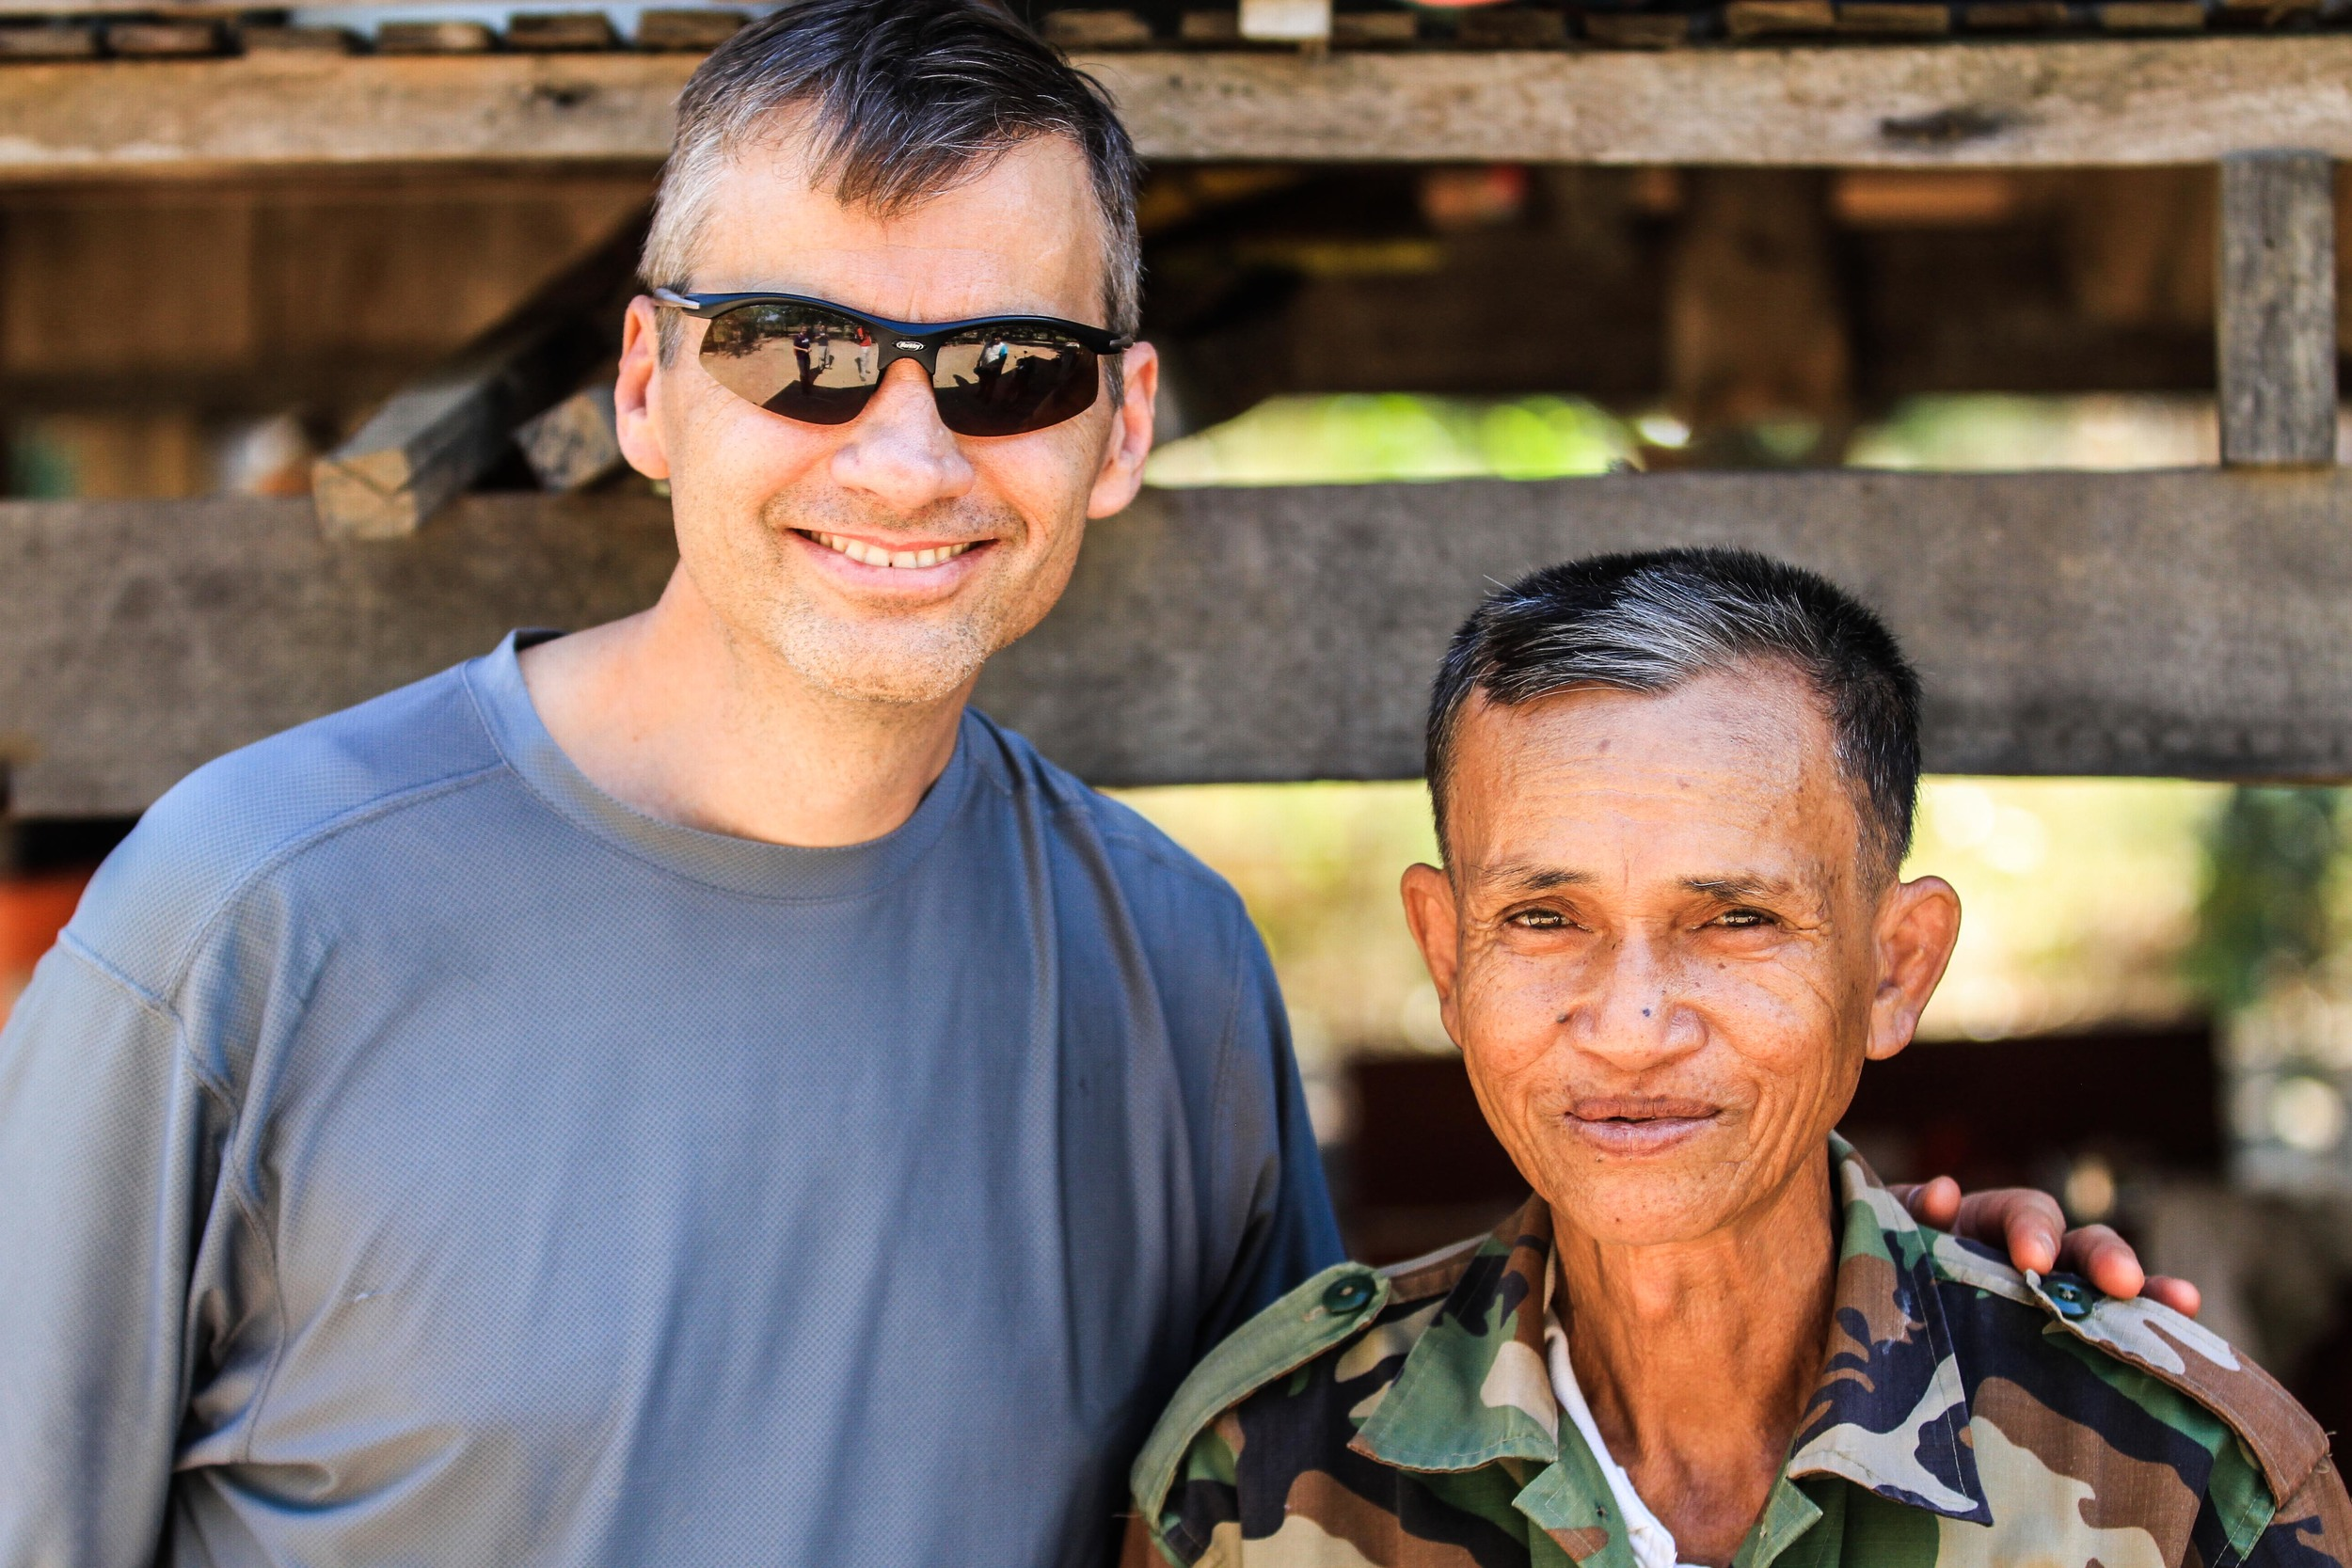 Todd with one of the village leaders.